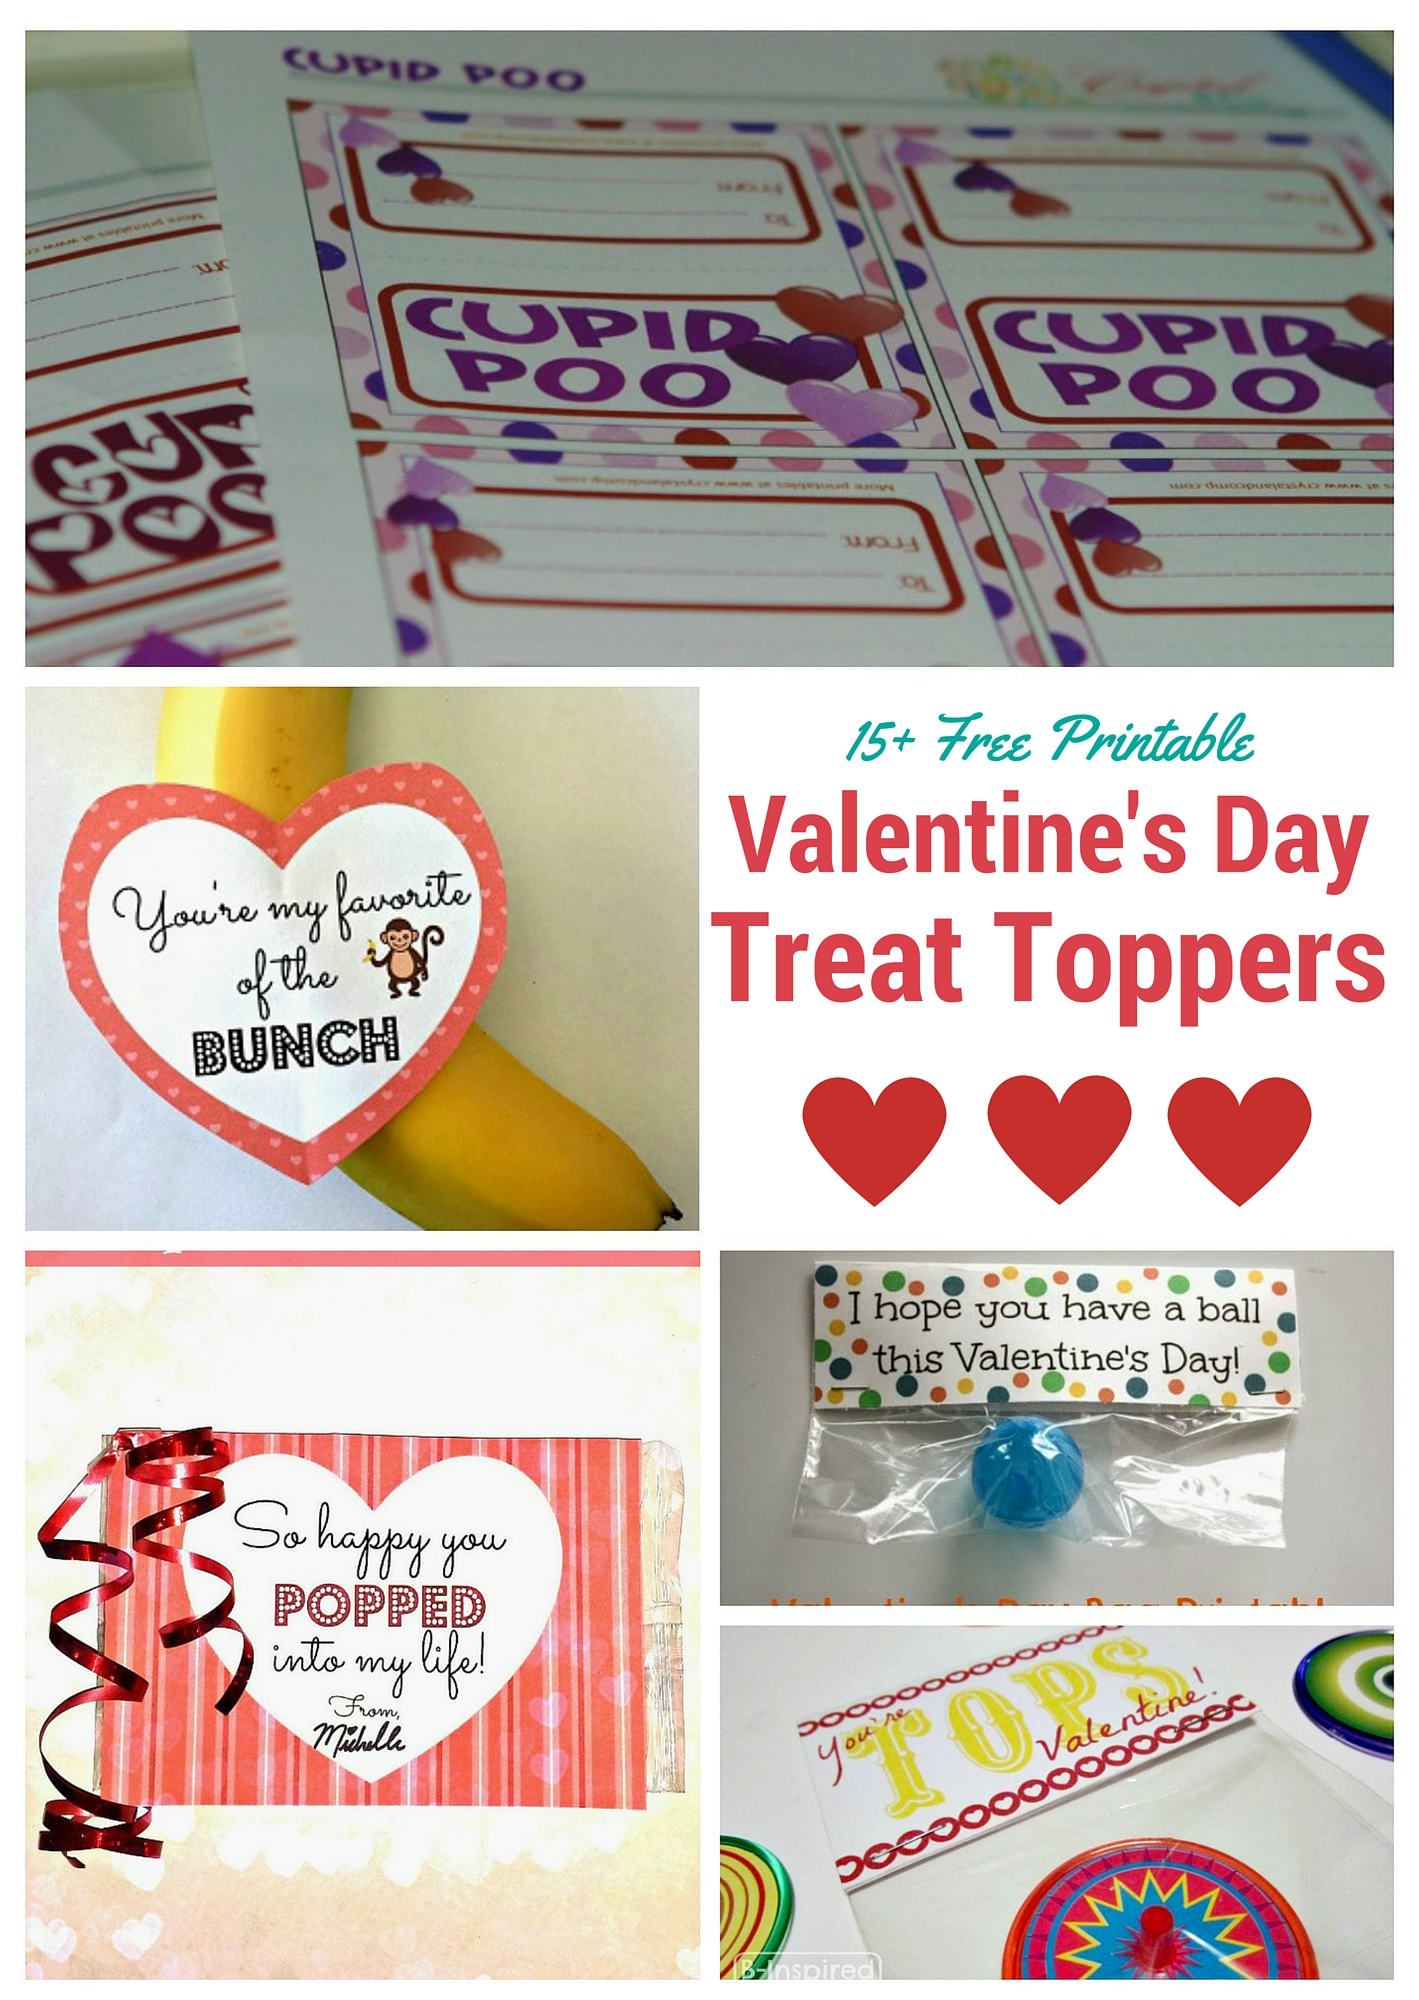 Valentines Day Treat Toppers